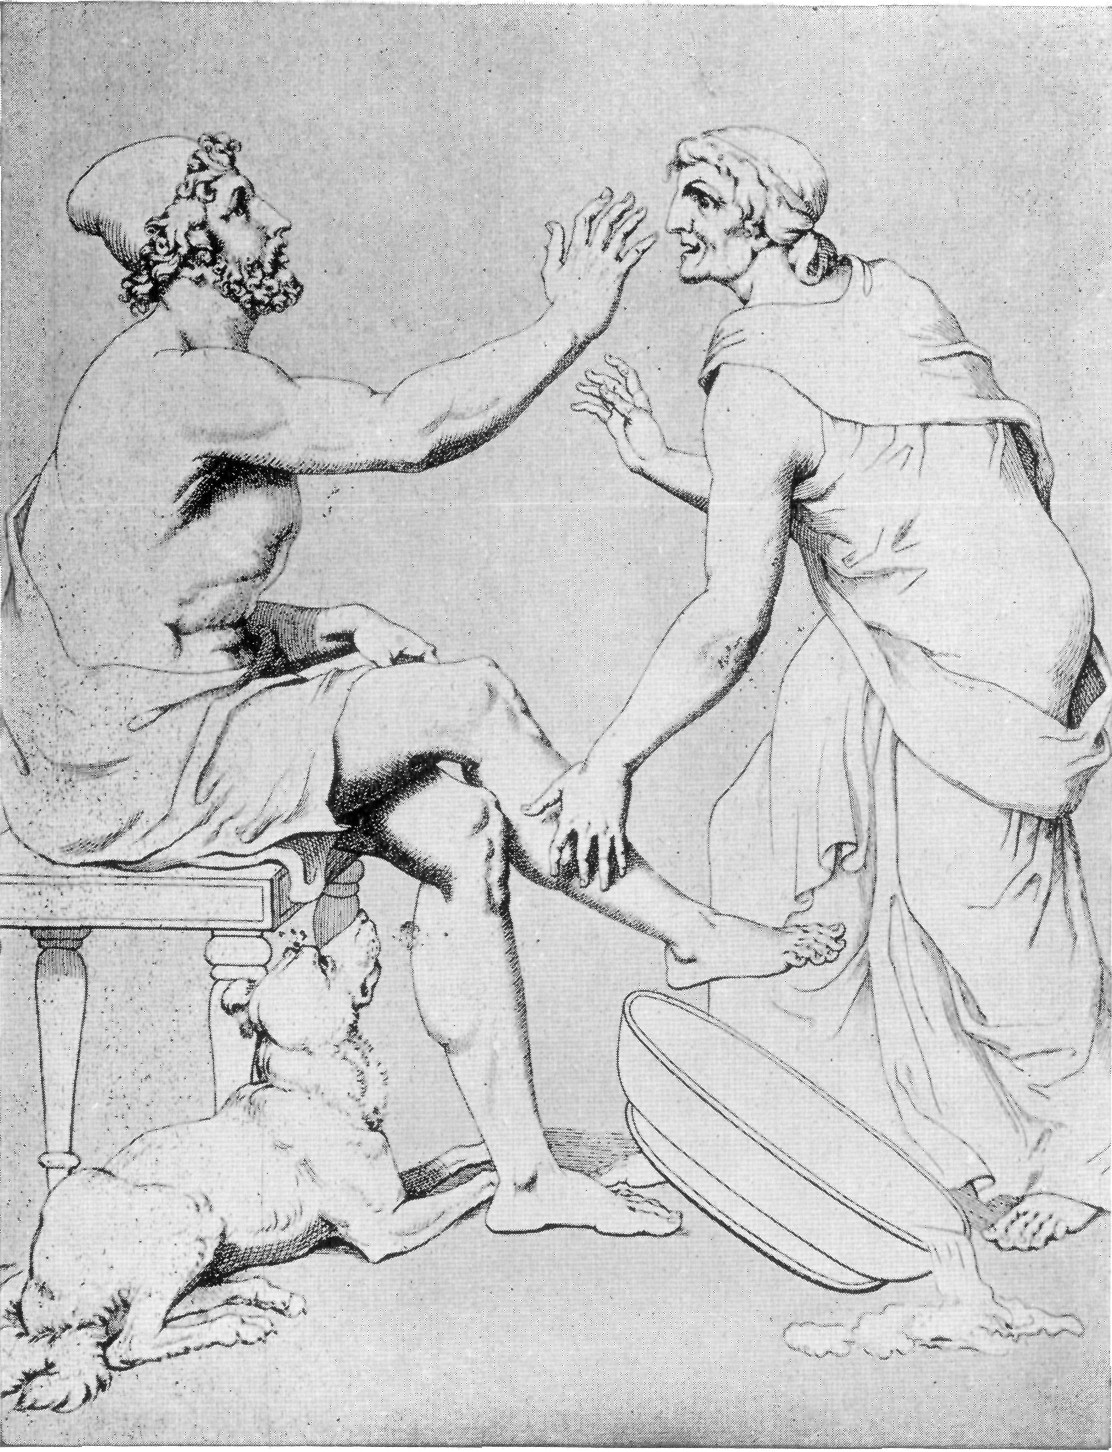 Depiction of Odiseo